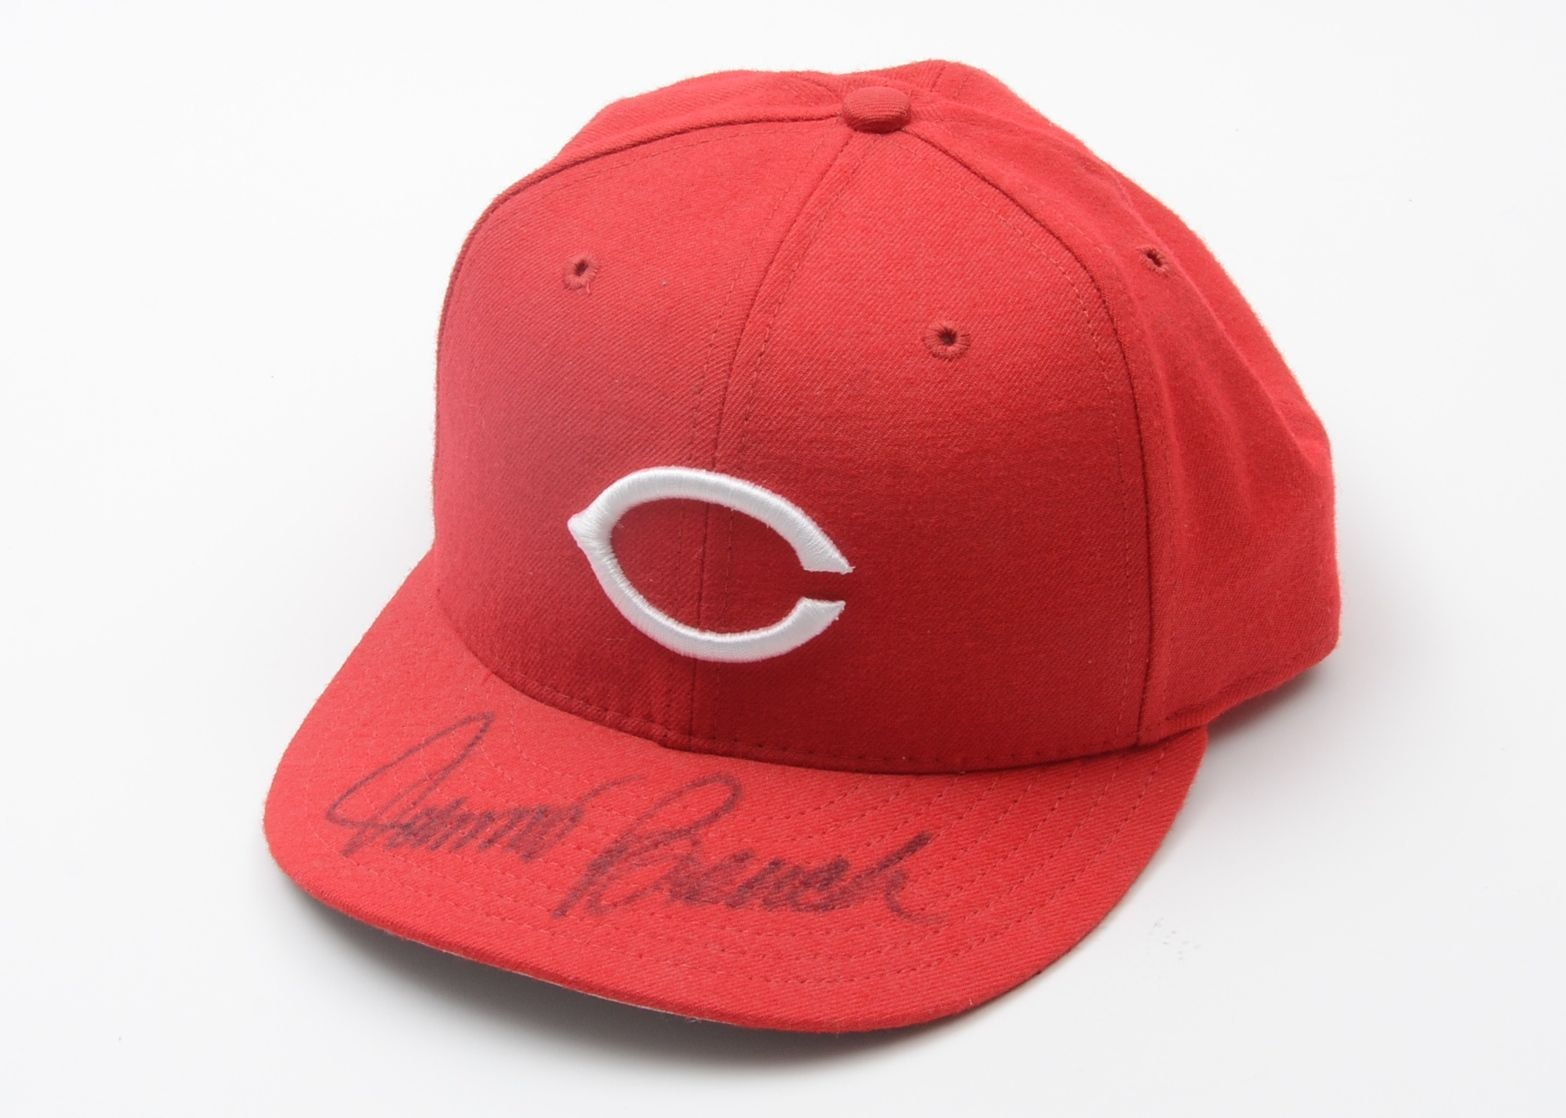 Johnny Bench Autographed Baseball Part - 45: Johnny Bench Autographed Baseball Cap ...